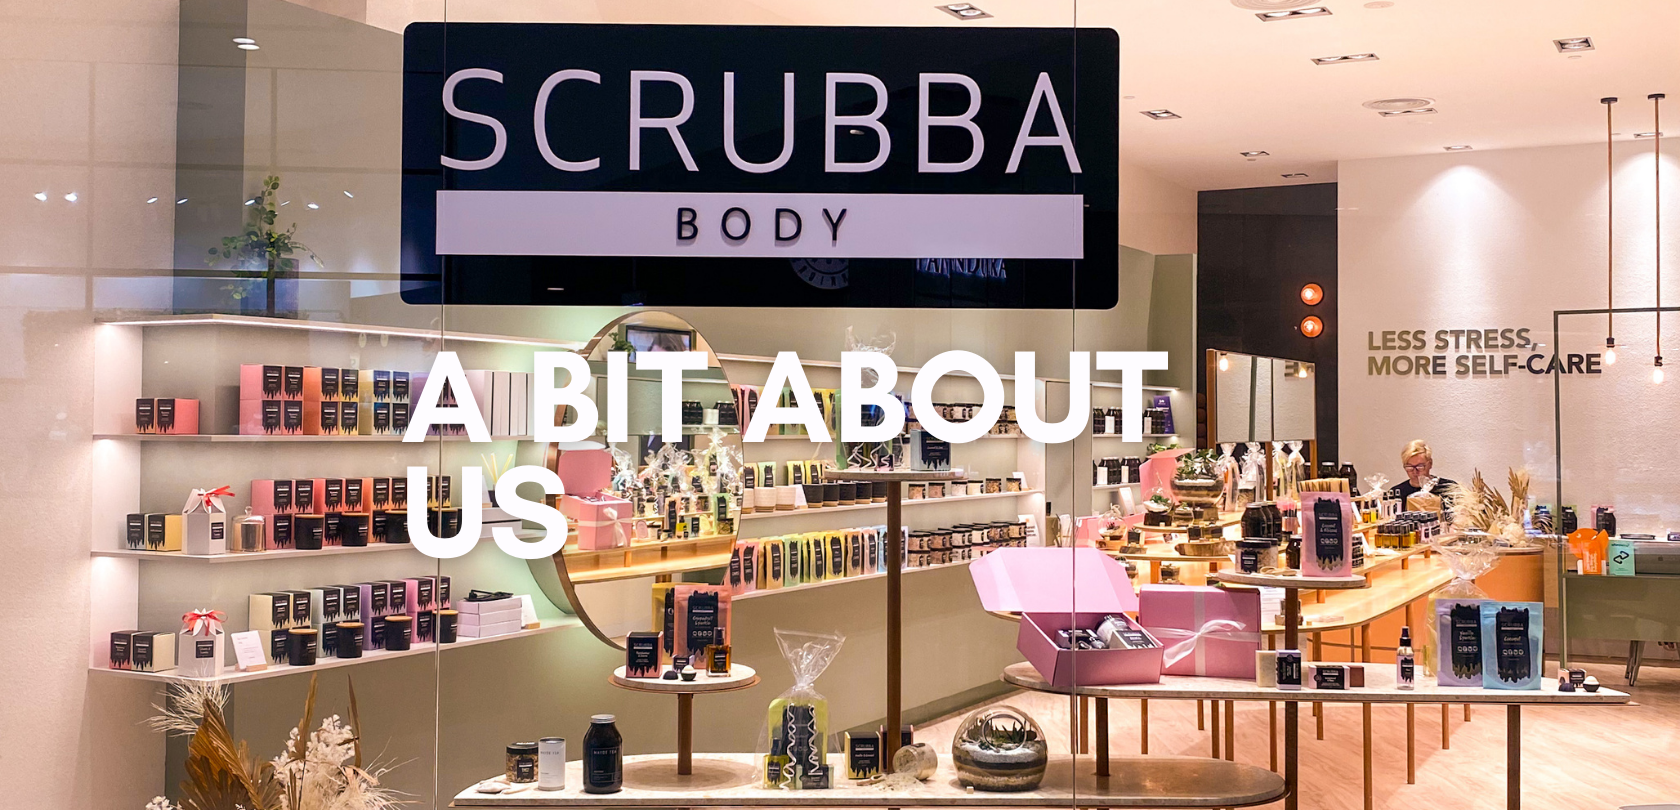 Scrubba Body, a bit about us